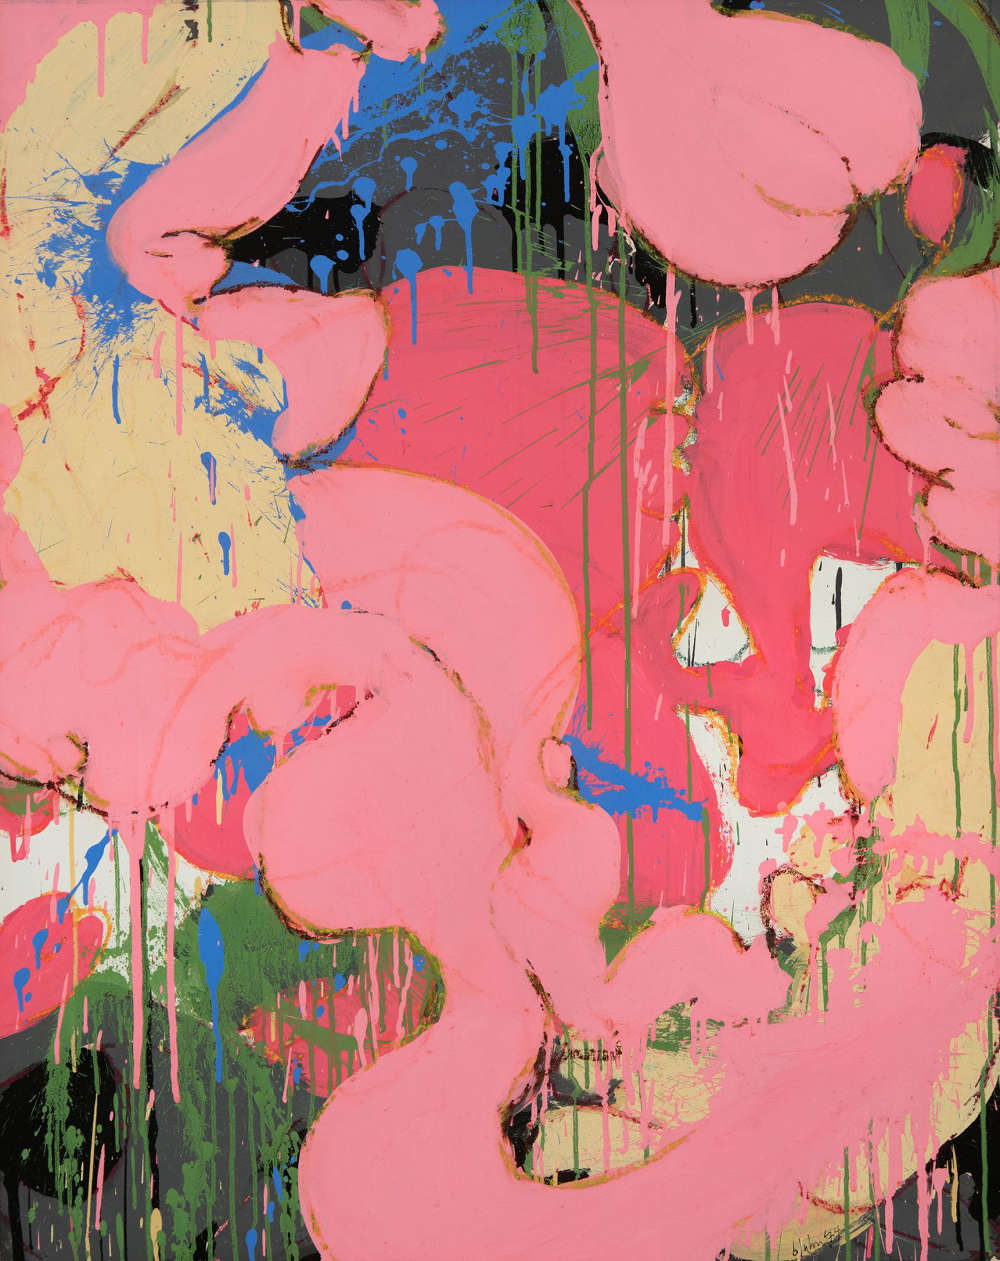 Norman Bluhm (1921-1999), Untitled, 1974. Acrylic and pastel on canvas mounted to canvas, 48 x 38 inches. Signed and dated lower right: bluhm / '74. Signed and dated verso: bluhm / '74